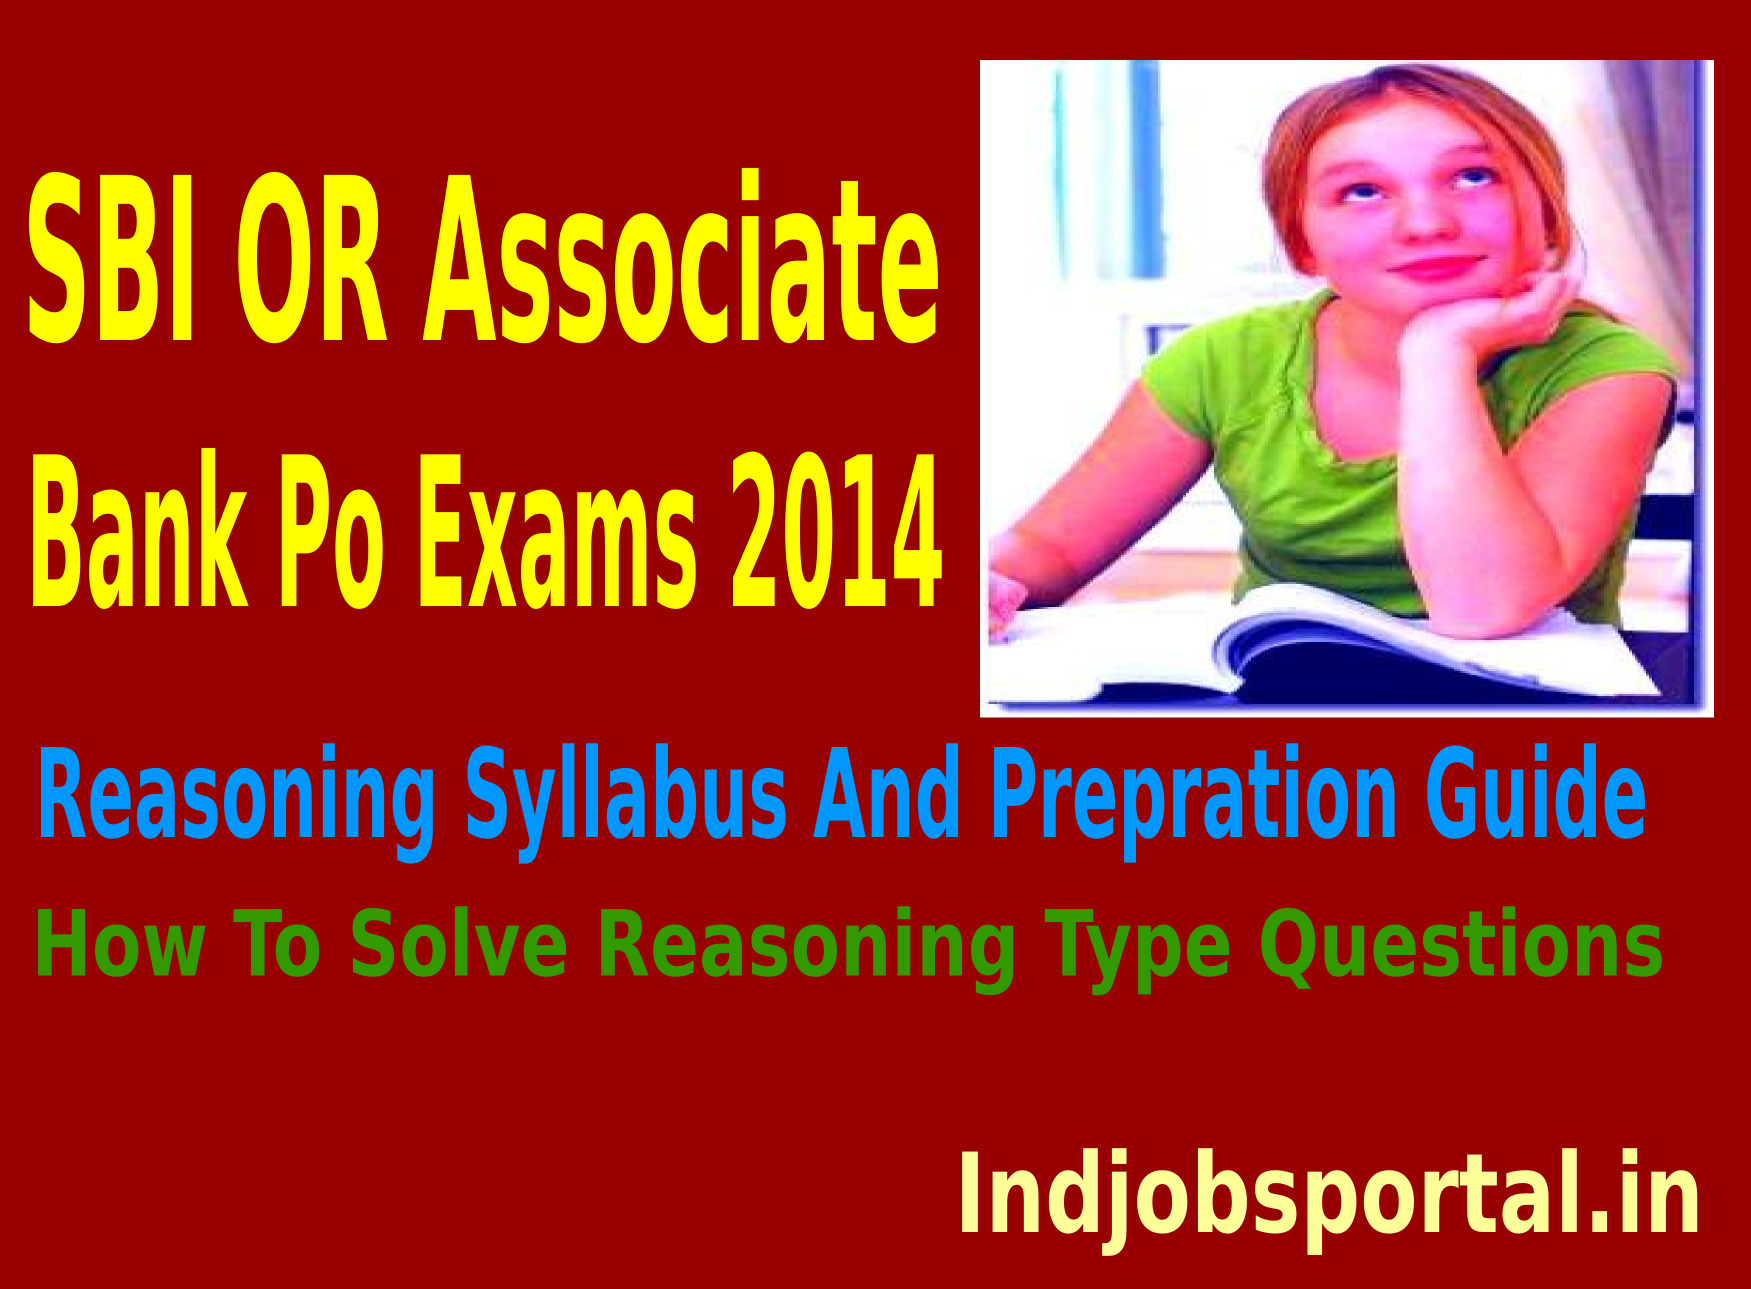 SBI OR Associate Bank PO Clerk Exams 2014, Reasoning Syllabus And Prepration Guide